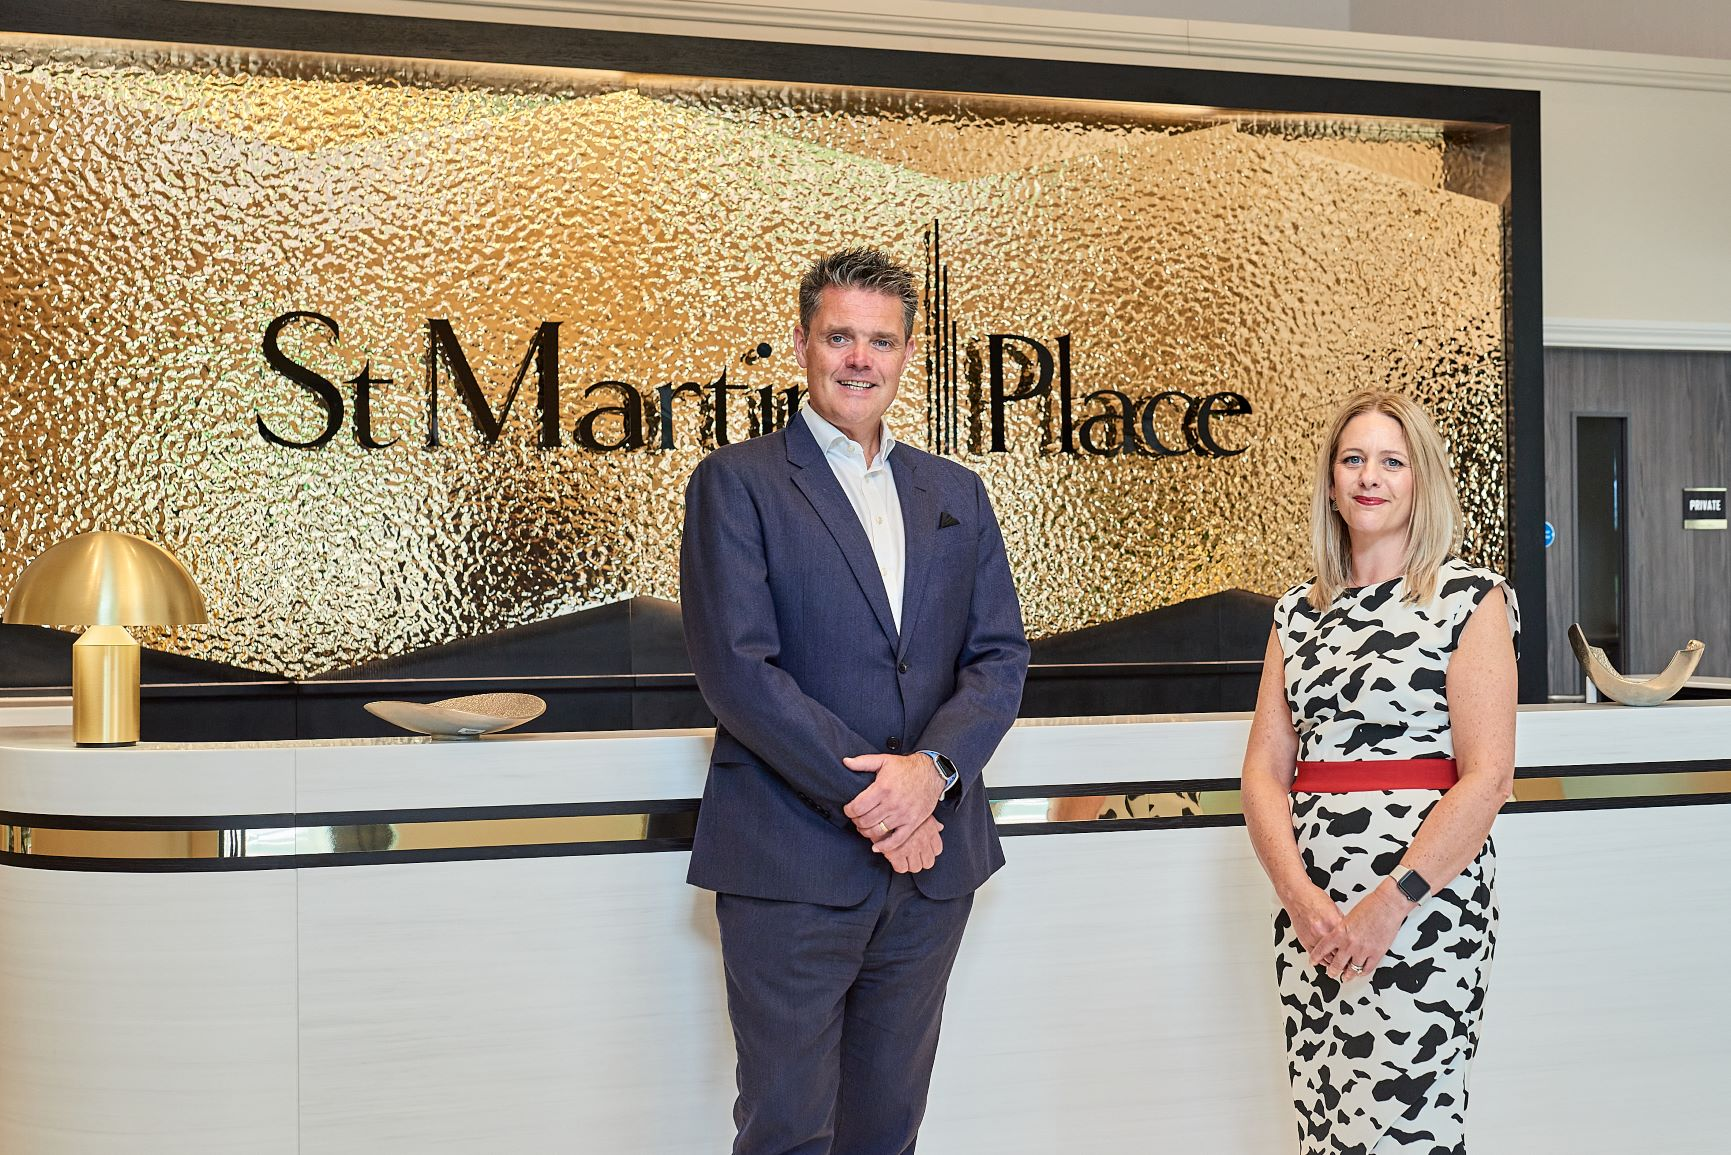 SWITCH HOSPITALITY MANAGEMENT TO PROVIDE HOTEL SERVICES TO ST MARTIN'S PLACE